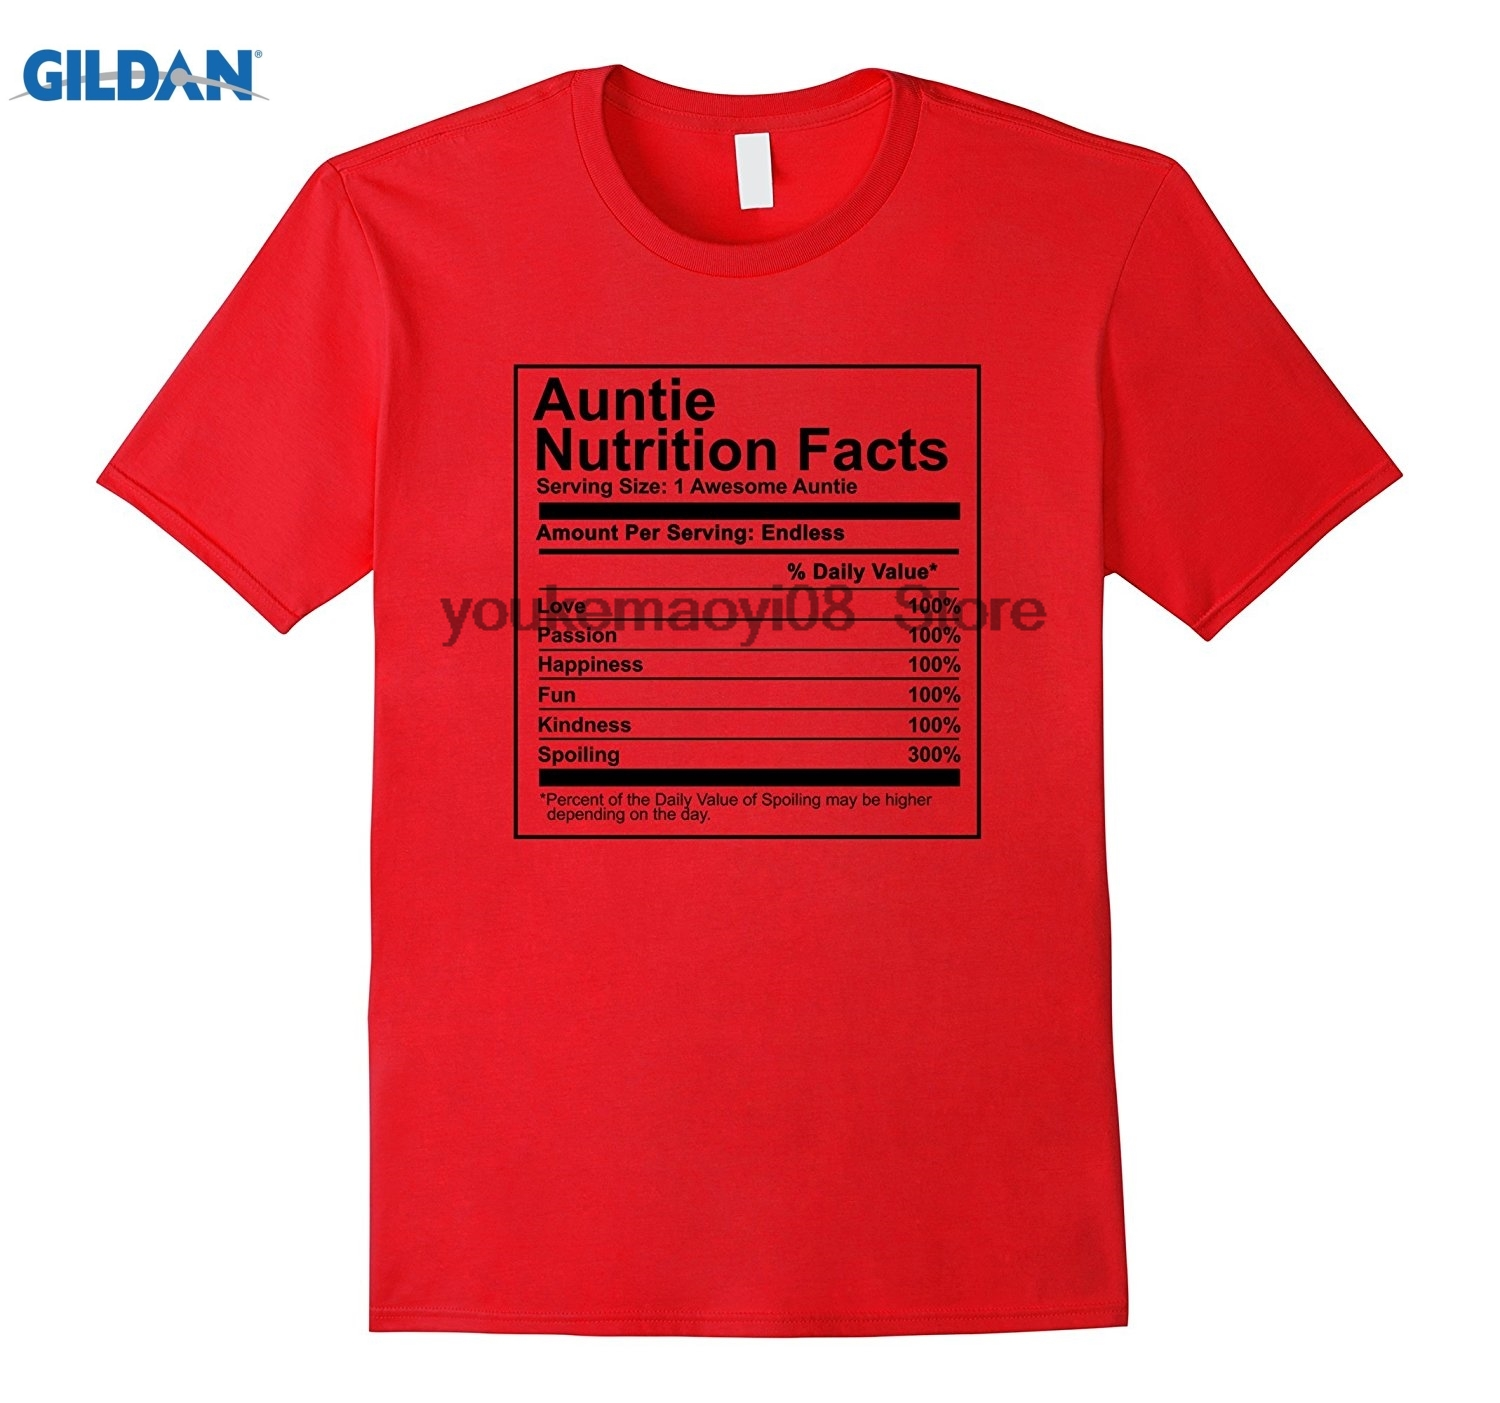 GILDAN Auntie Nutrition Facts Shirt Nutritional Mothers Day Gift